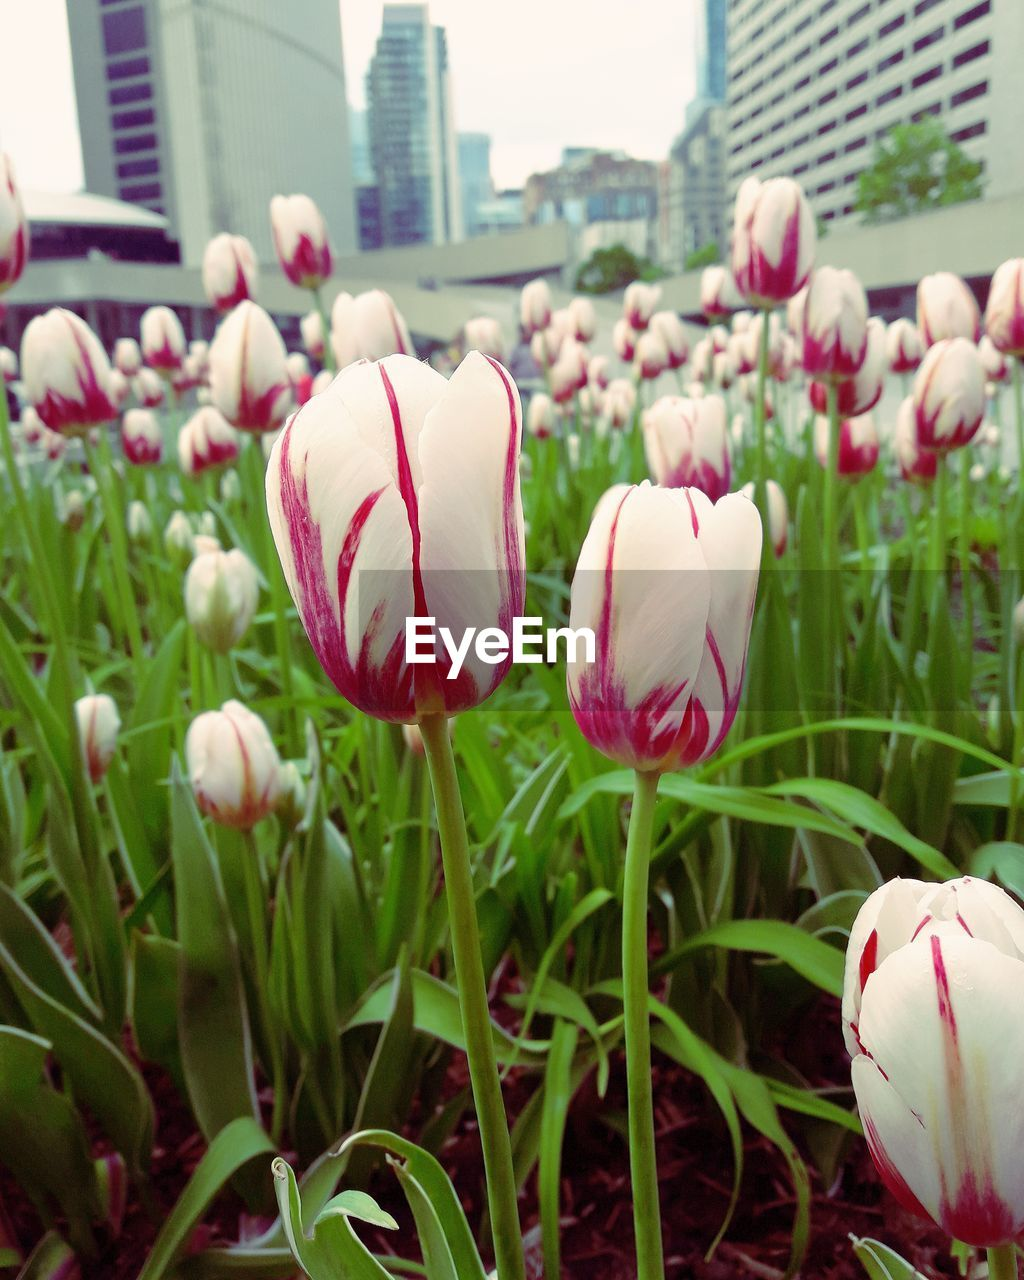 flower, petal, growth, nature, fragility, flower head, freshness, blooming, beauty in nature, tulip, plant, close-up, pink color, outdoors, no people, day, grass, crocus